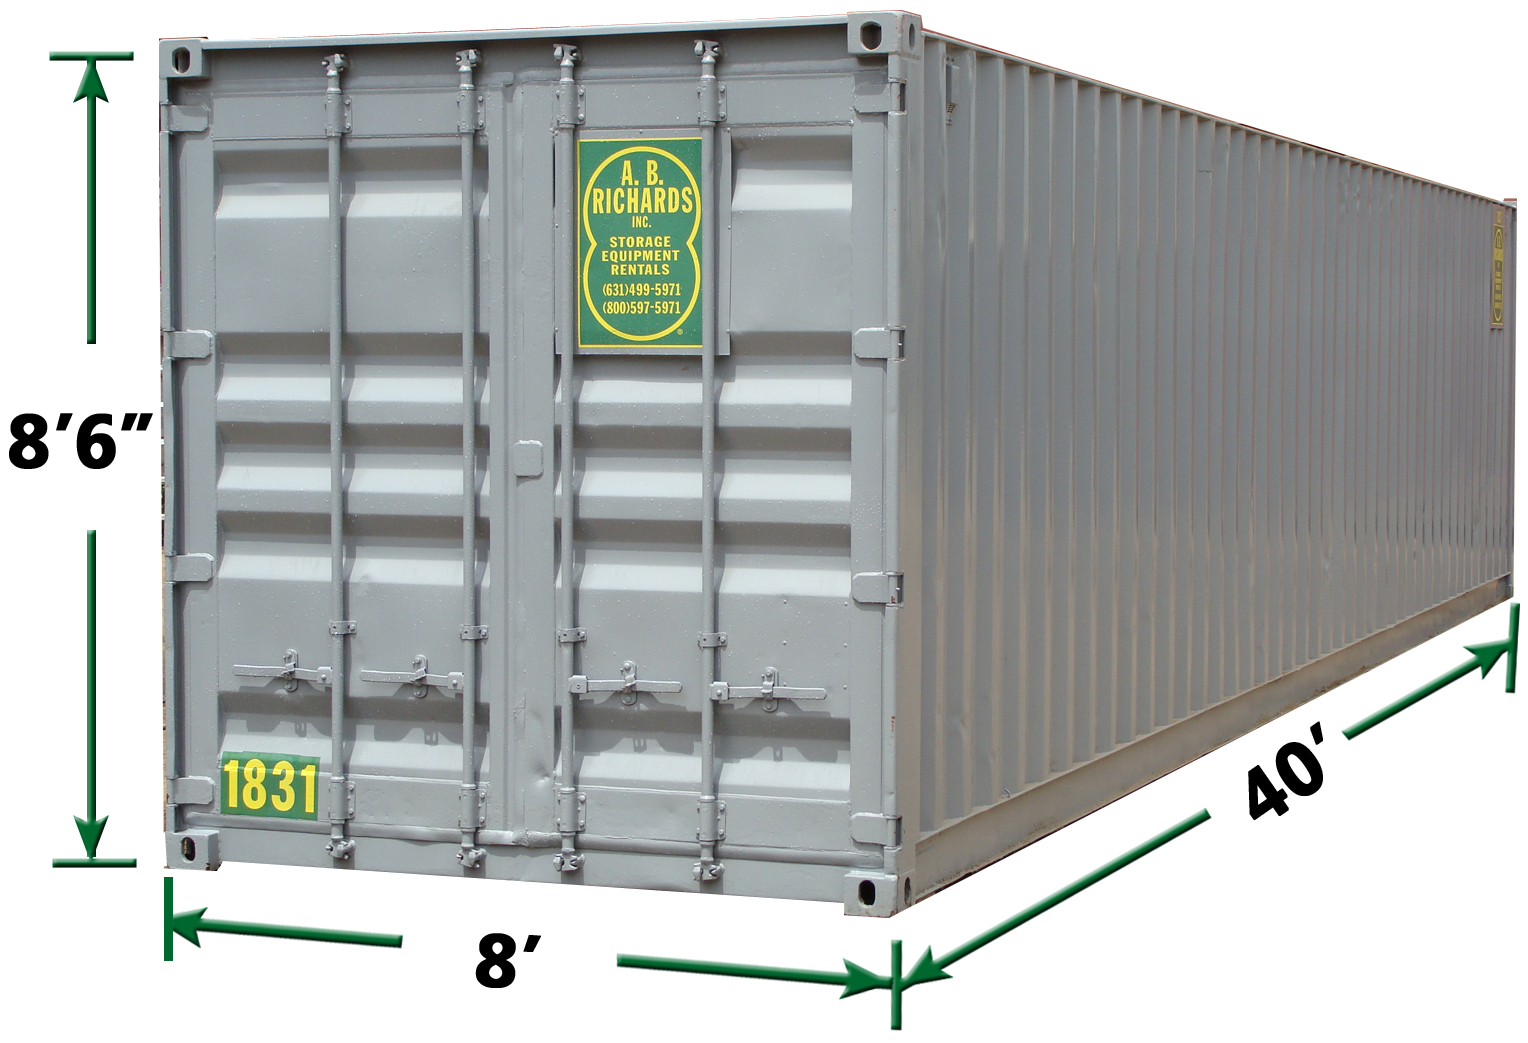 Commercial Storage Container Rentals AB Richards